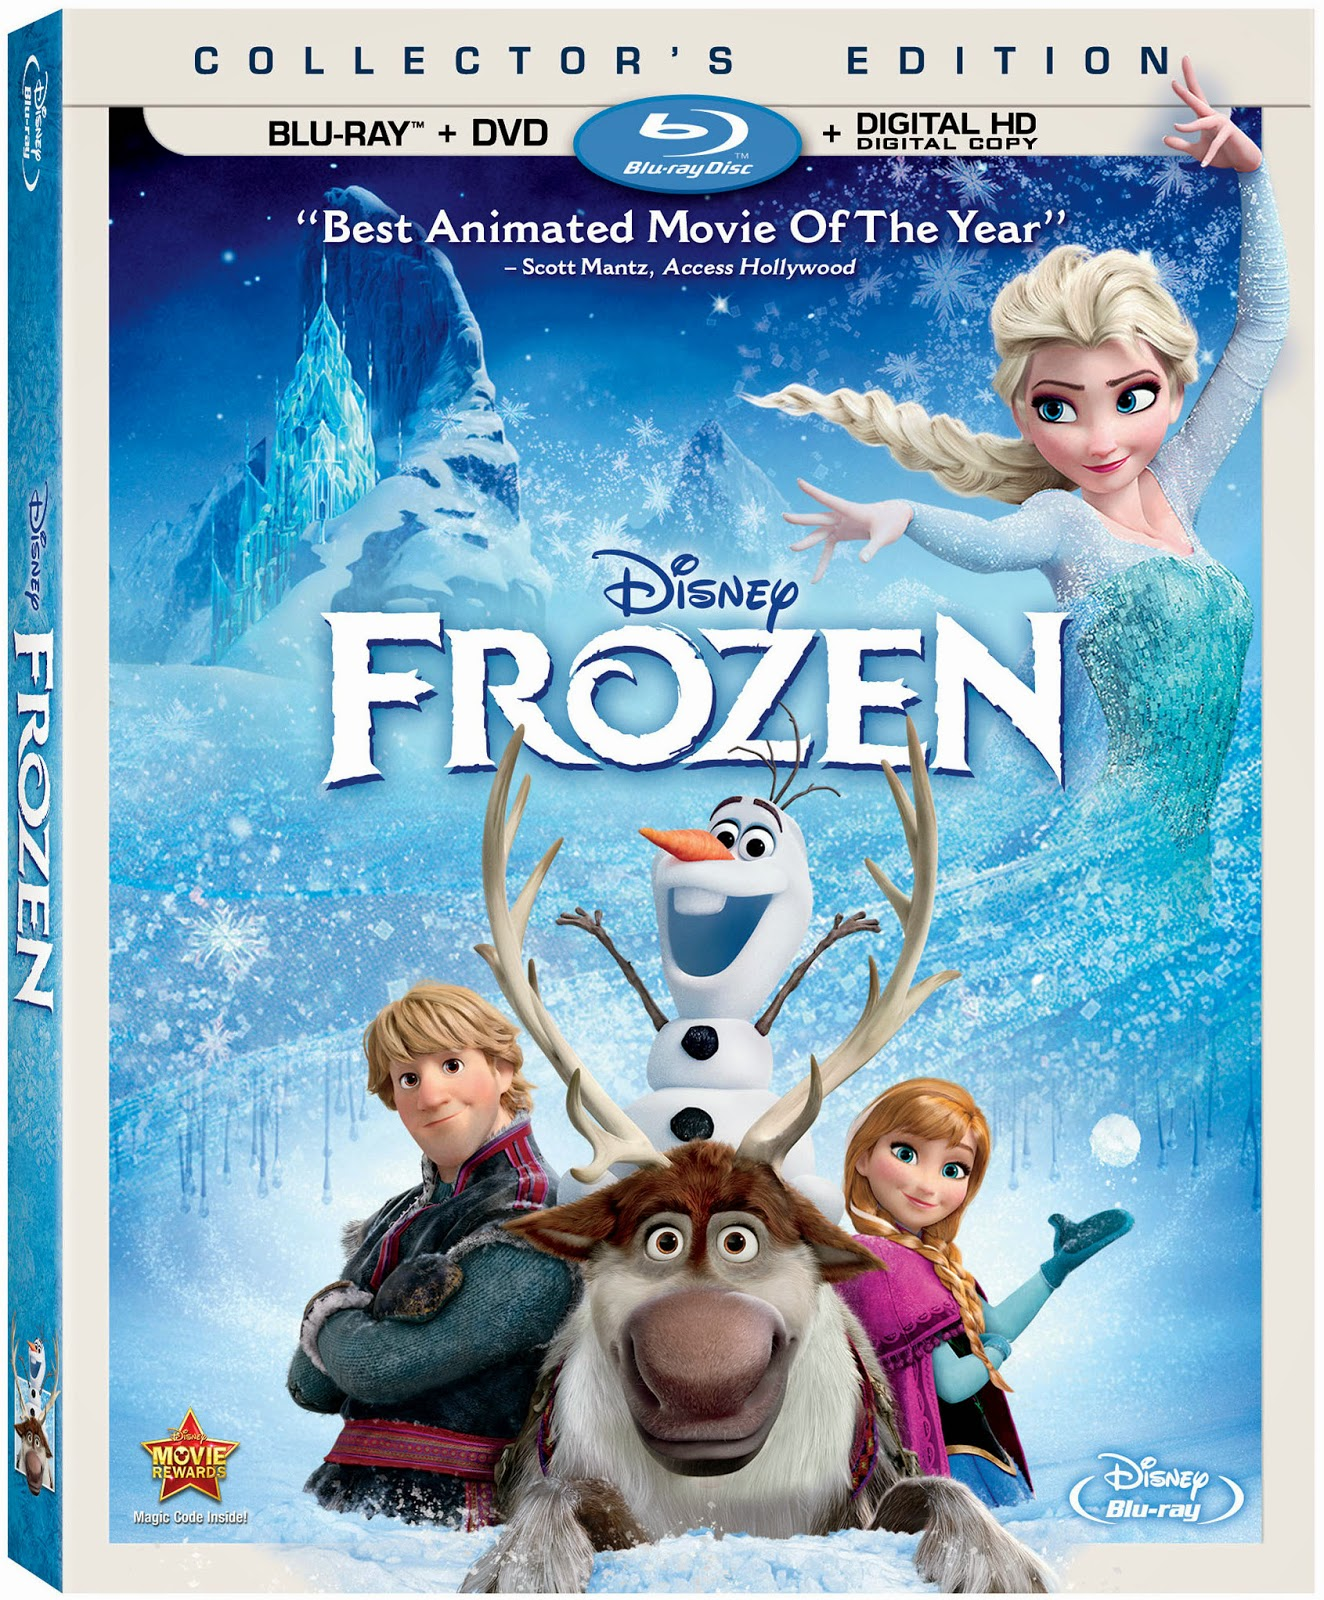 Disney\'s Frozen Now Out On Blu-ray™ Combo Pack & DVD | Two of a kind ...